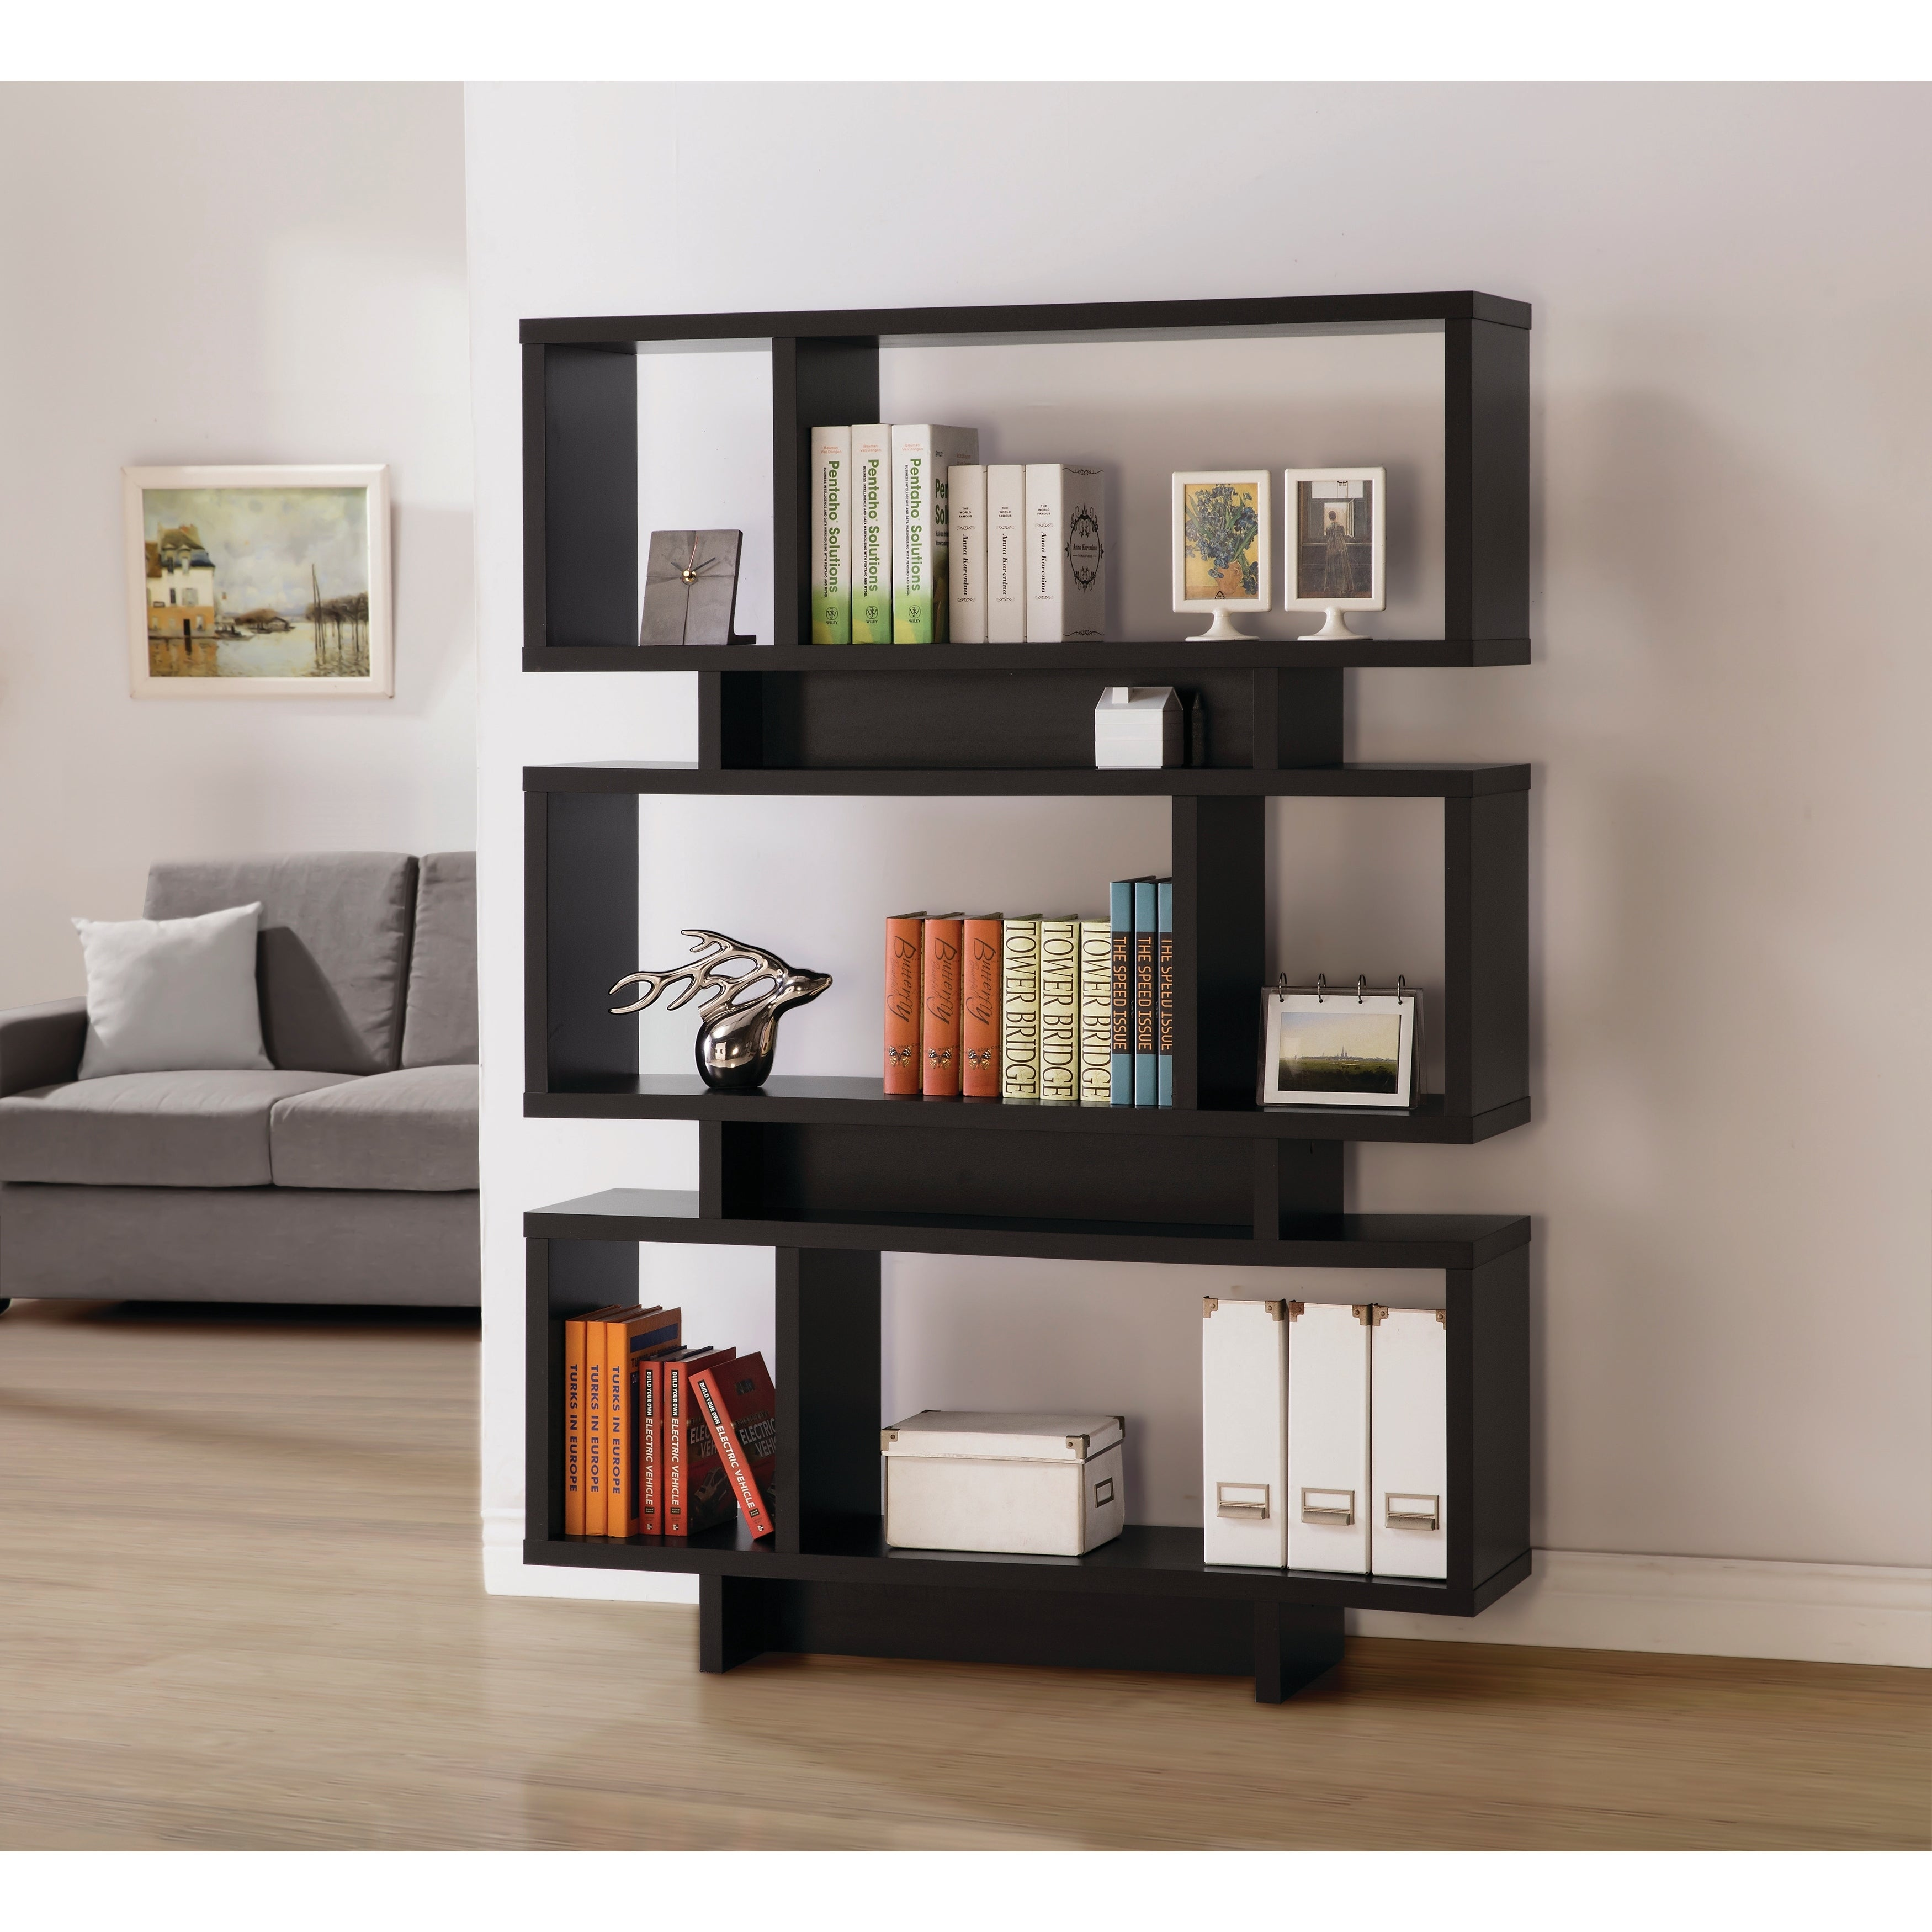 Contemporary 6 Shelf Geometric Bookcase 47 25 X 11 50 X 65 75